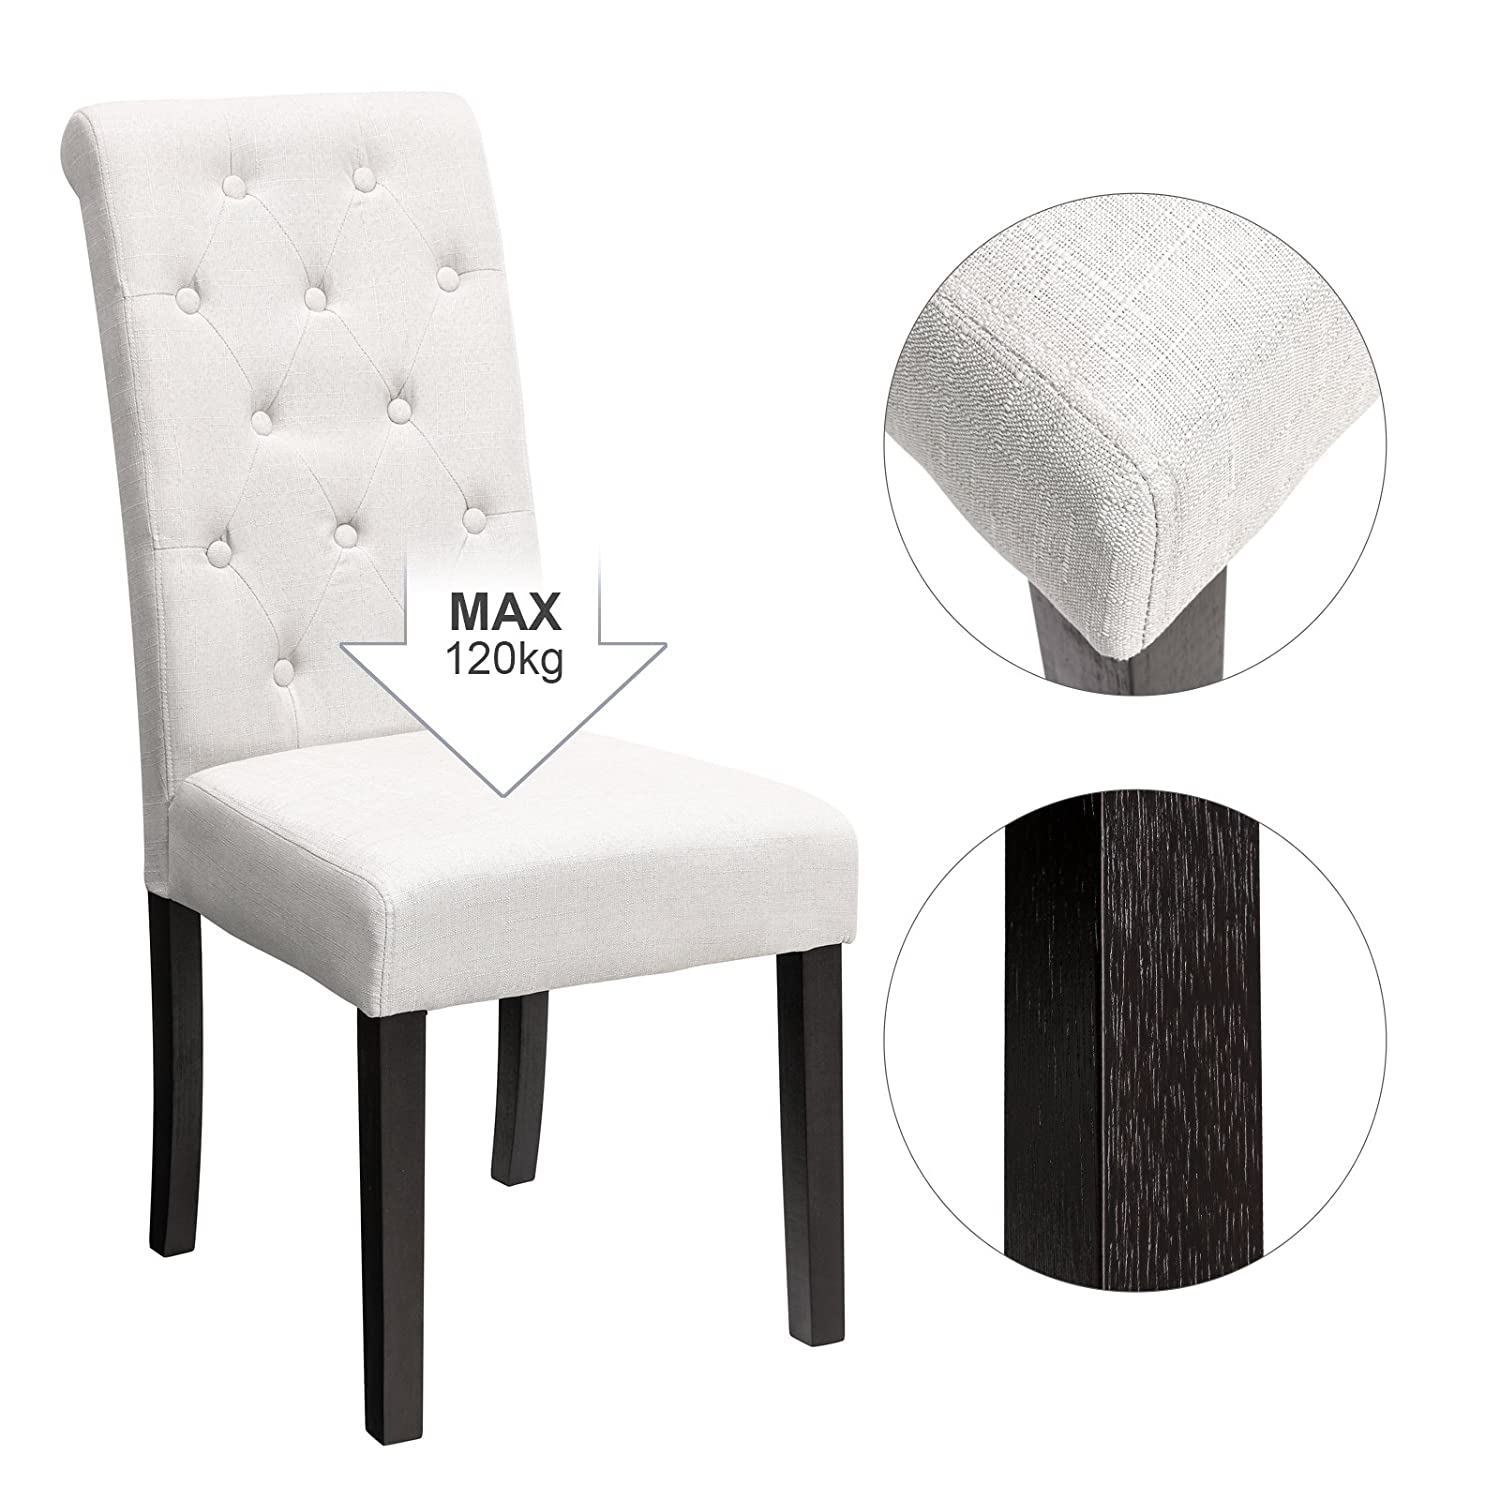 Songmics cotton linen upholstered dining chair set of 2 button tufted parson chair solid wood legs seat height 18 5 with high backrest beige uldc26be